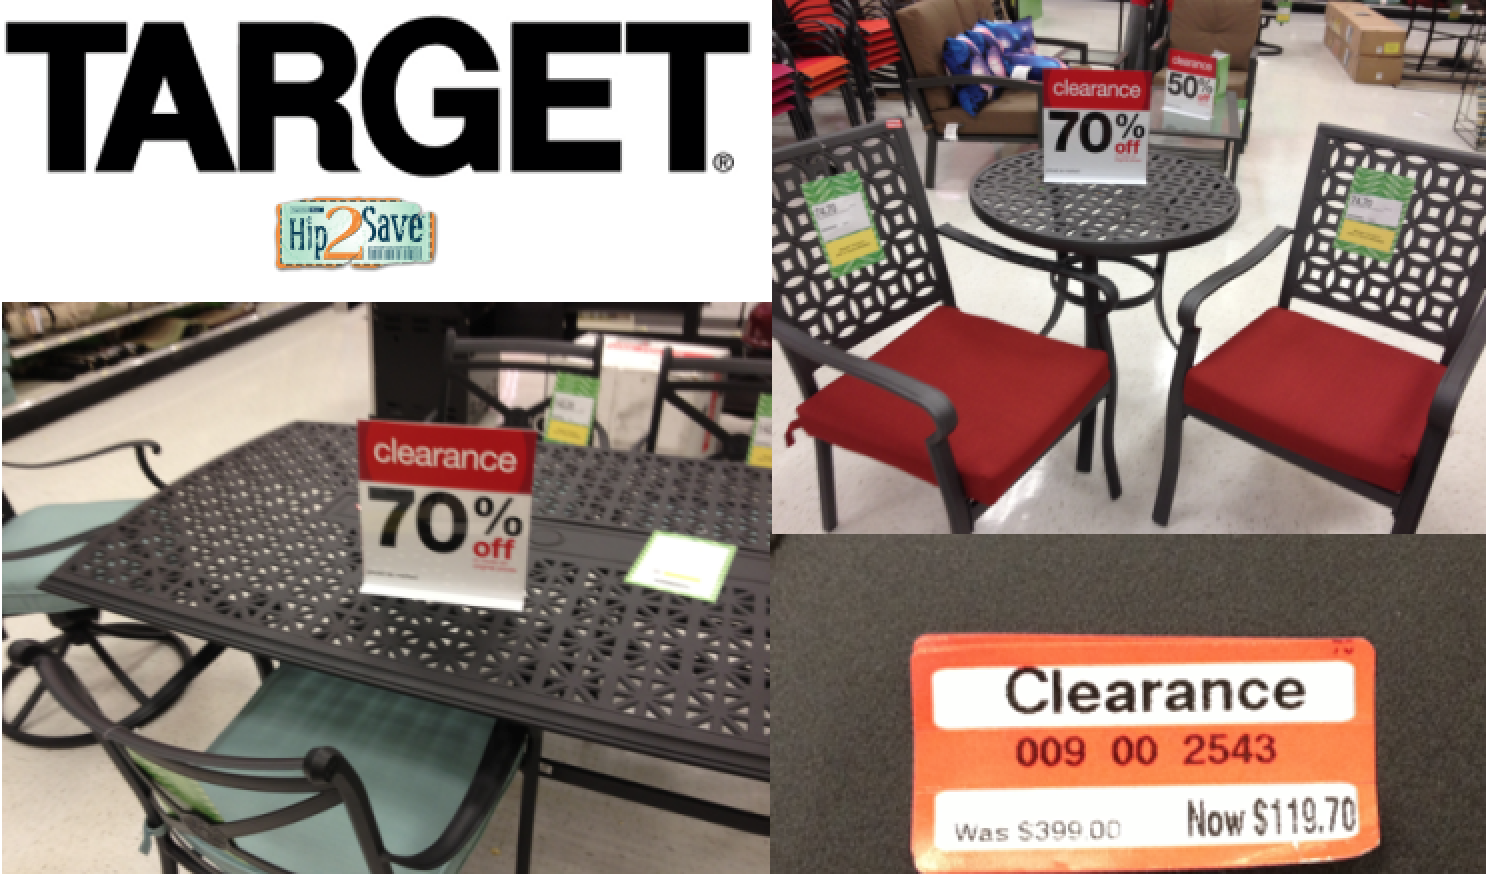 Target Patio Outdoor Furniture Up To 70 Off Cartwheel Savings Offers Lots Of Great Deals